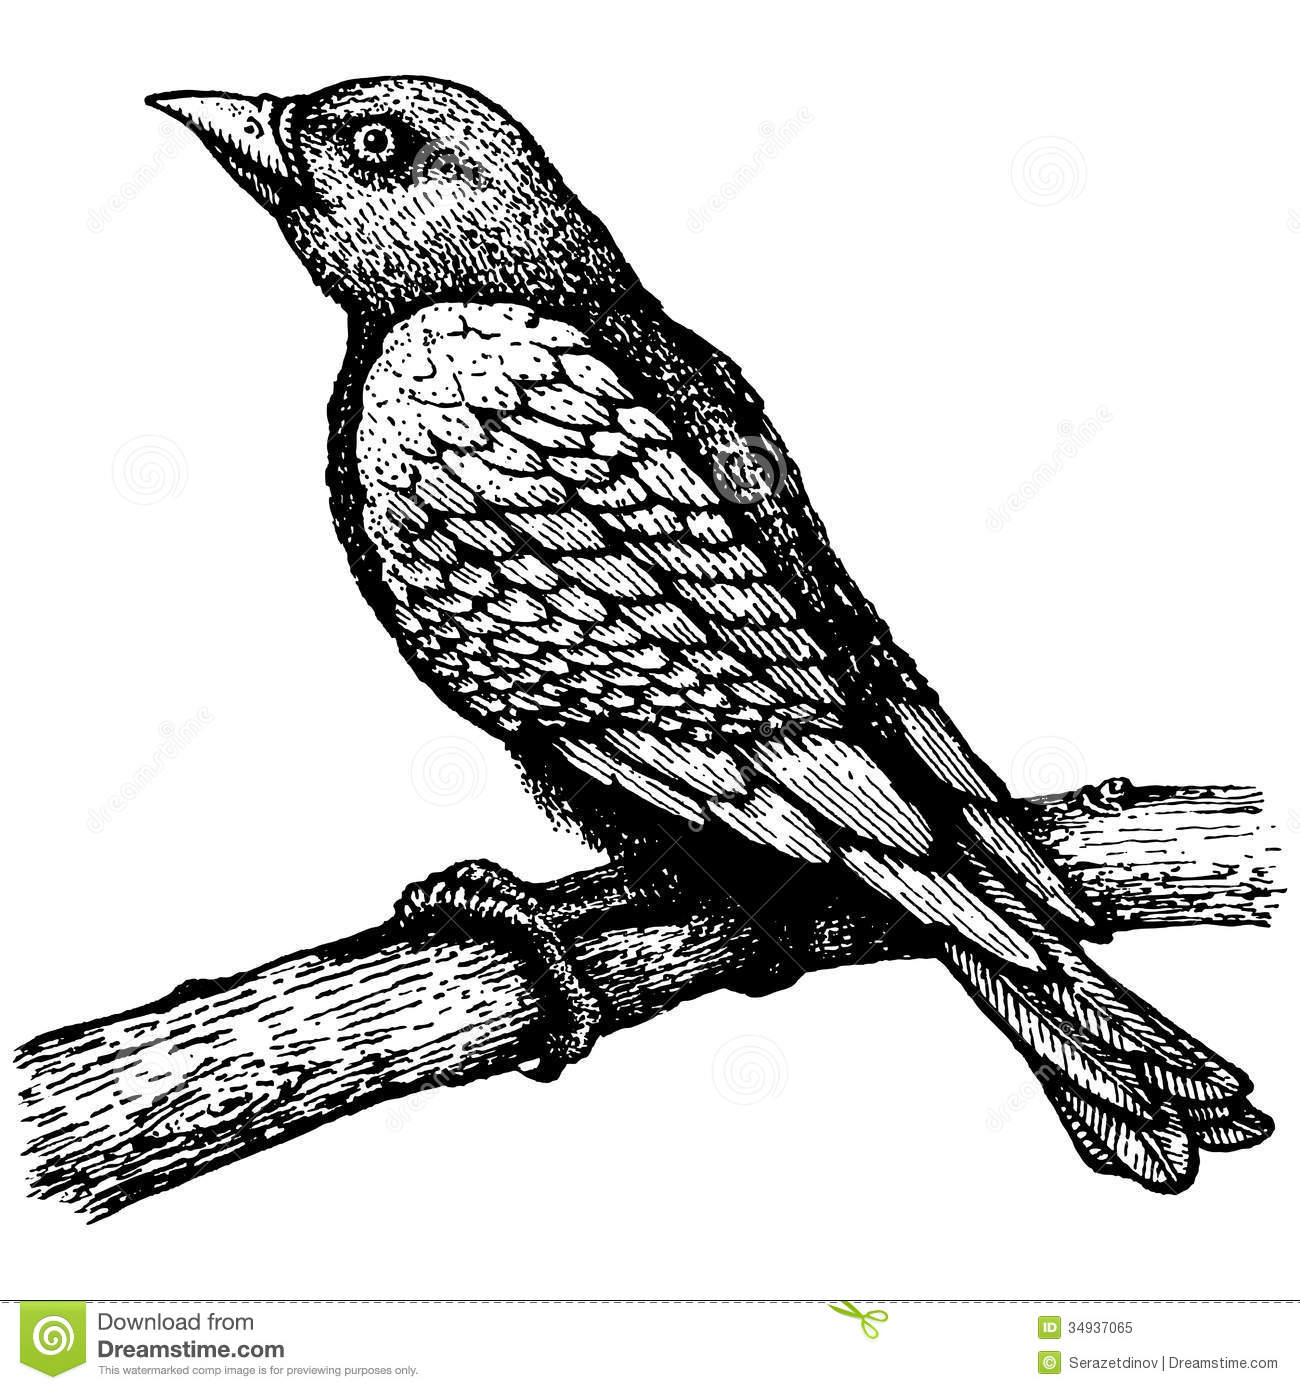 Black bird on branch drawing